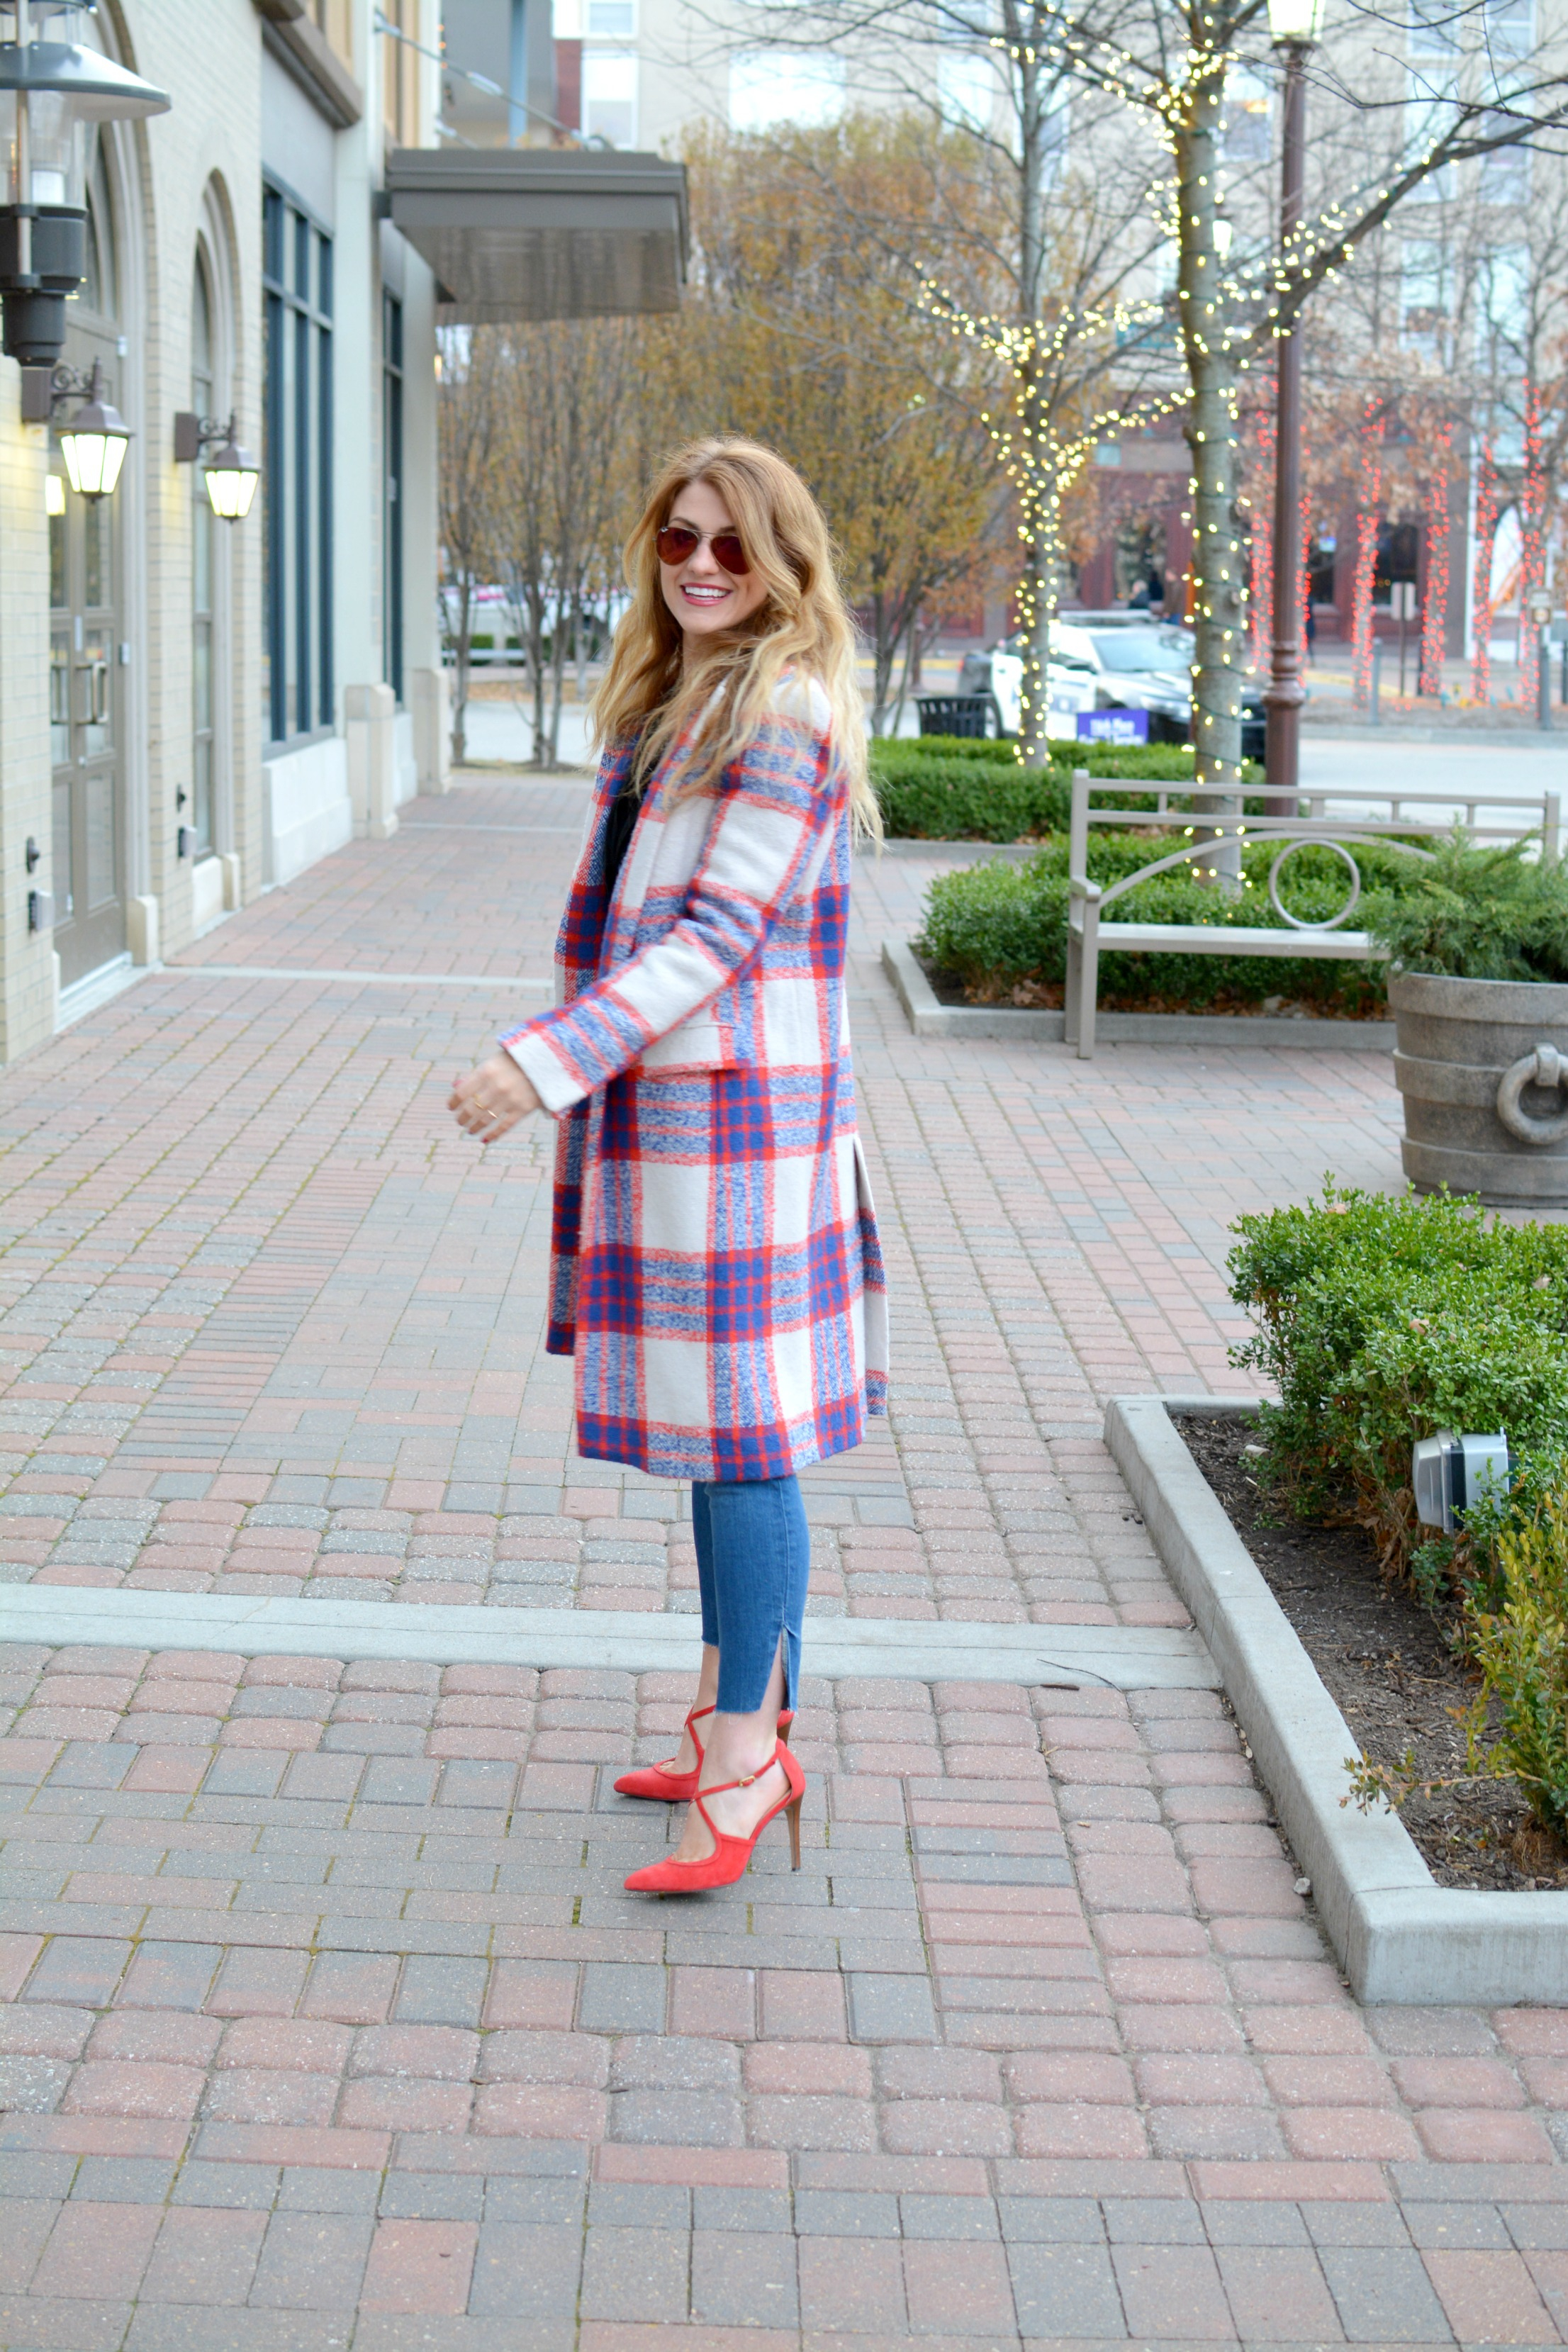 Ashley from LSR in a plaid statement coat and red pumps